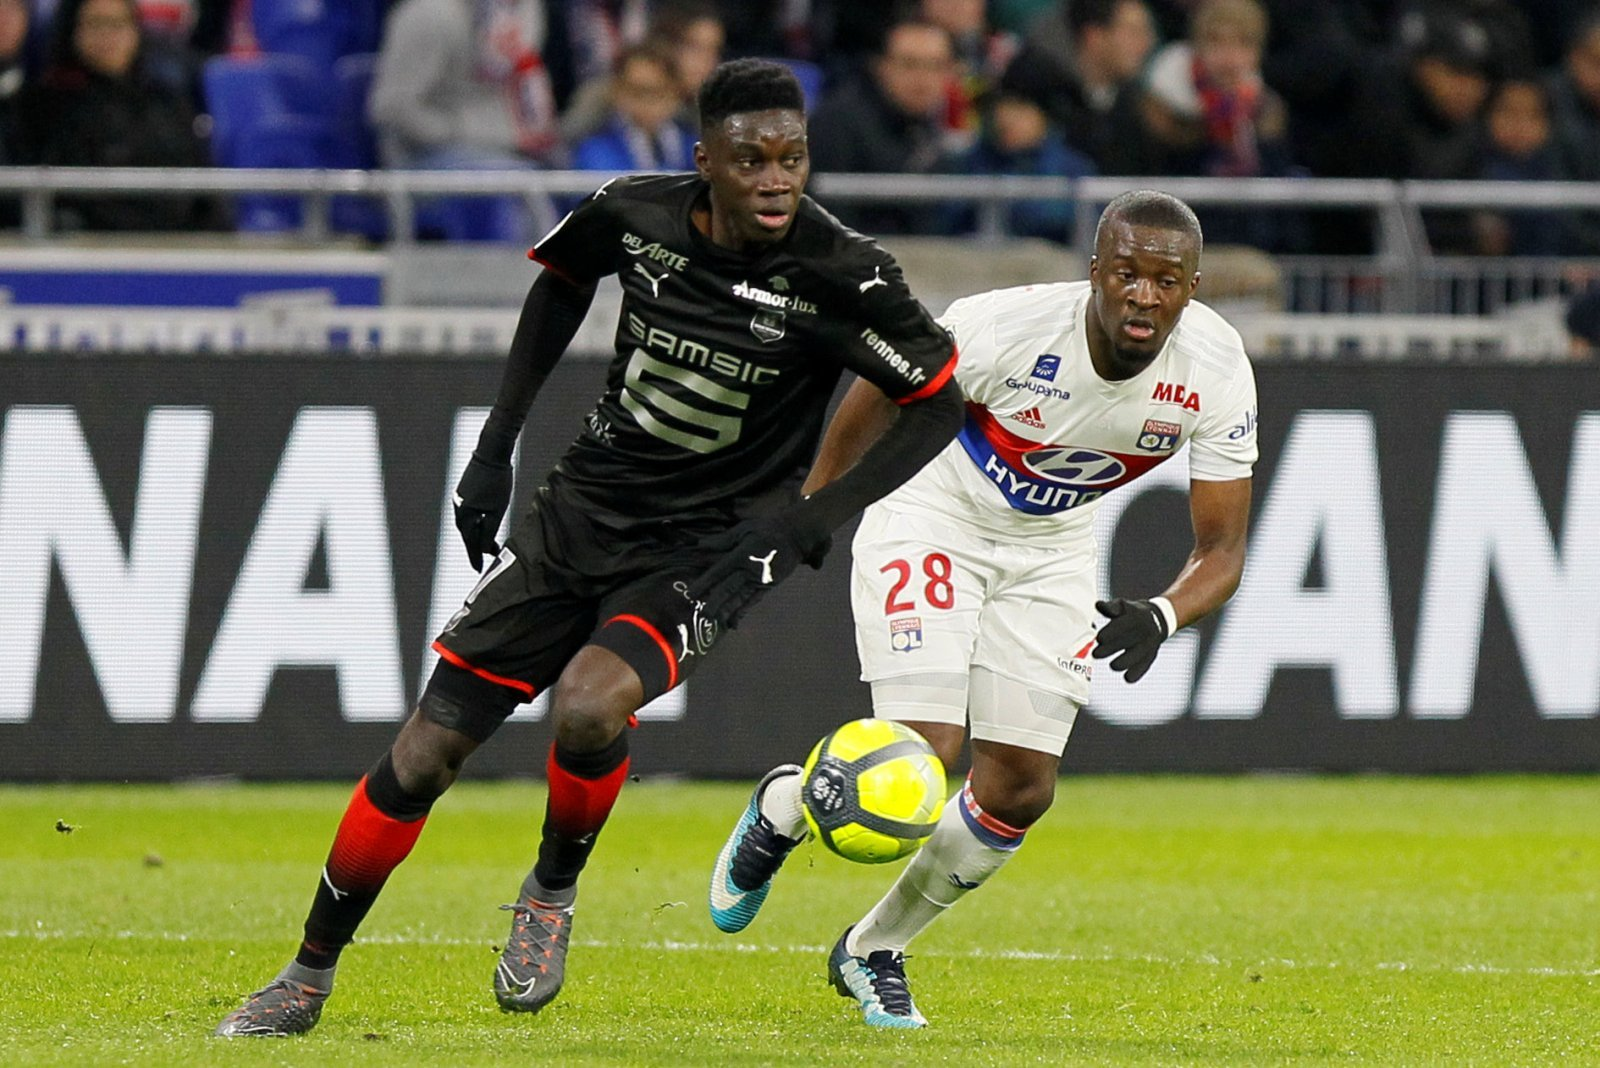 Arsenal fans on Twitter would love to see Emery sign Stade Rennais' Sarr